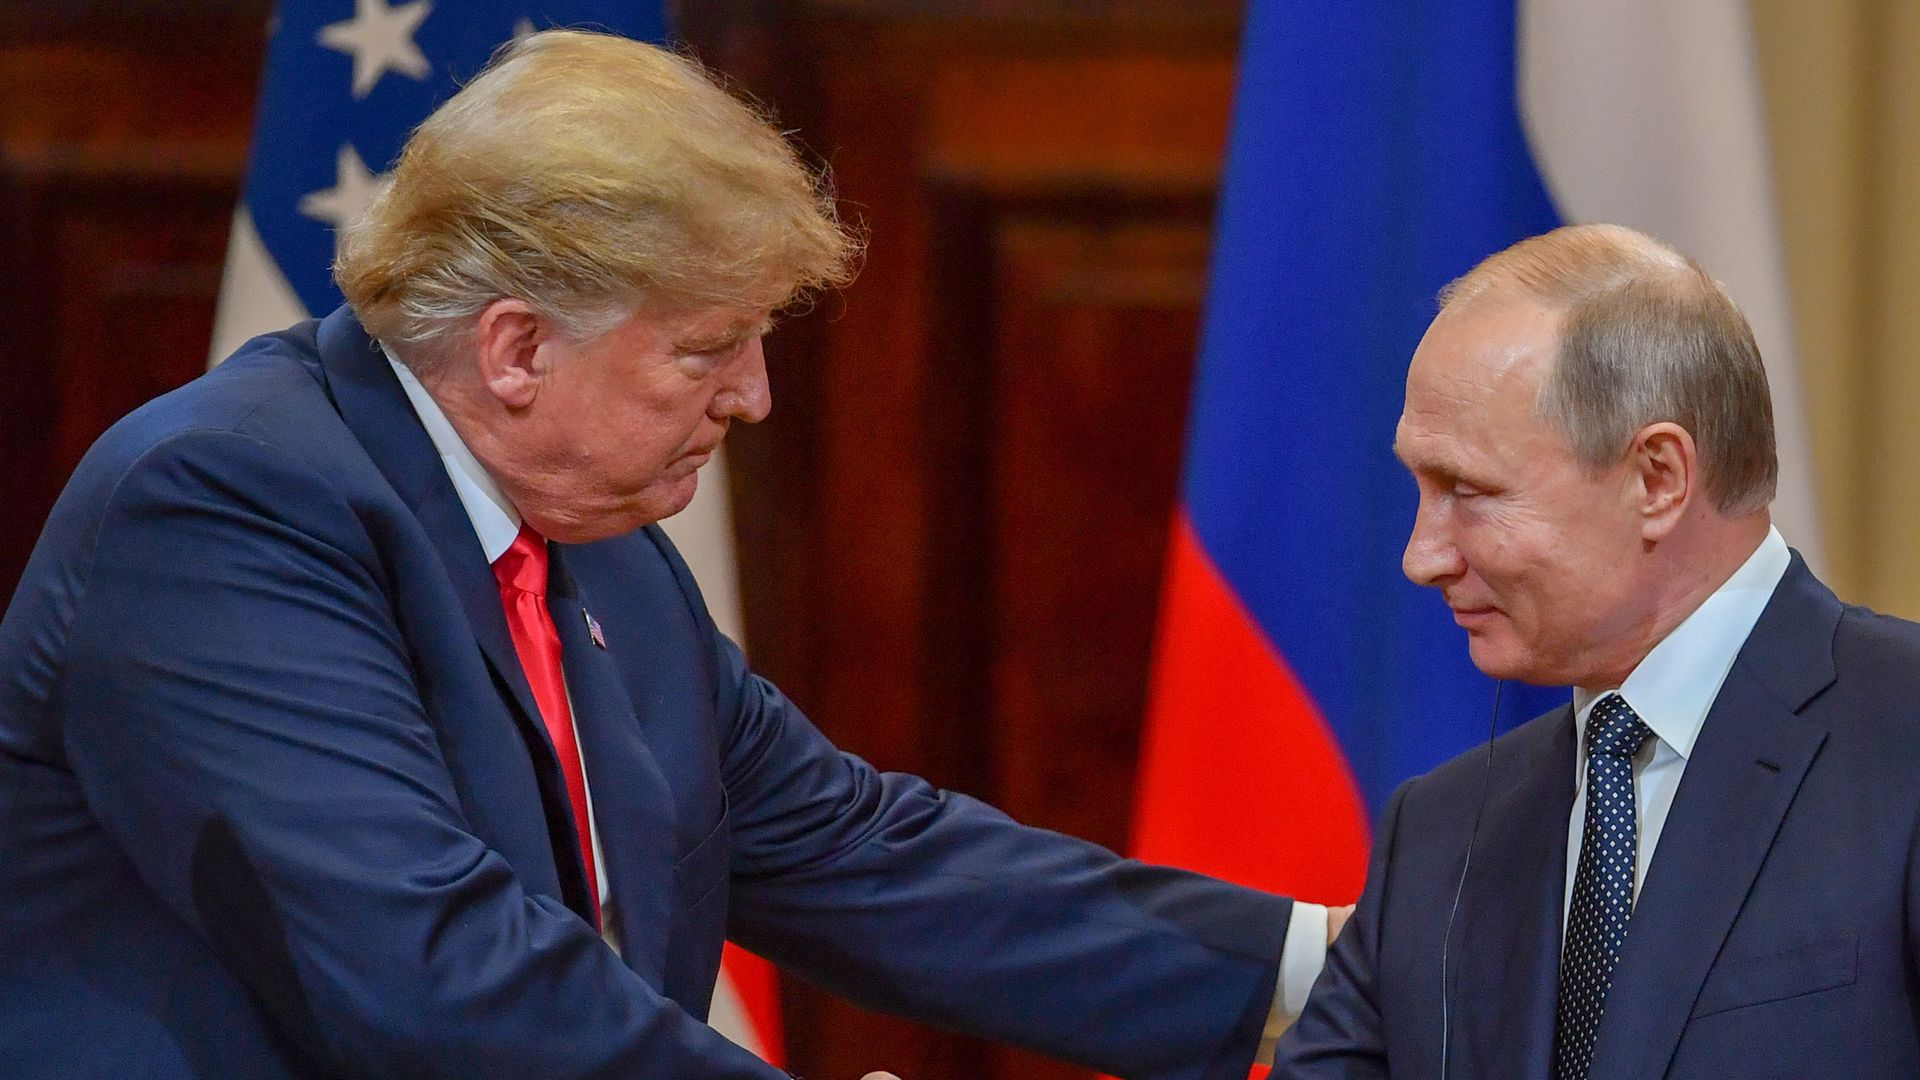 Trump shaking hands with Putin